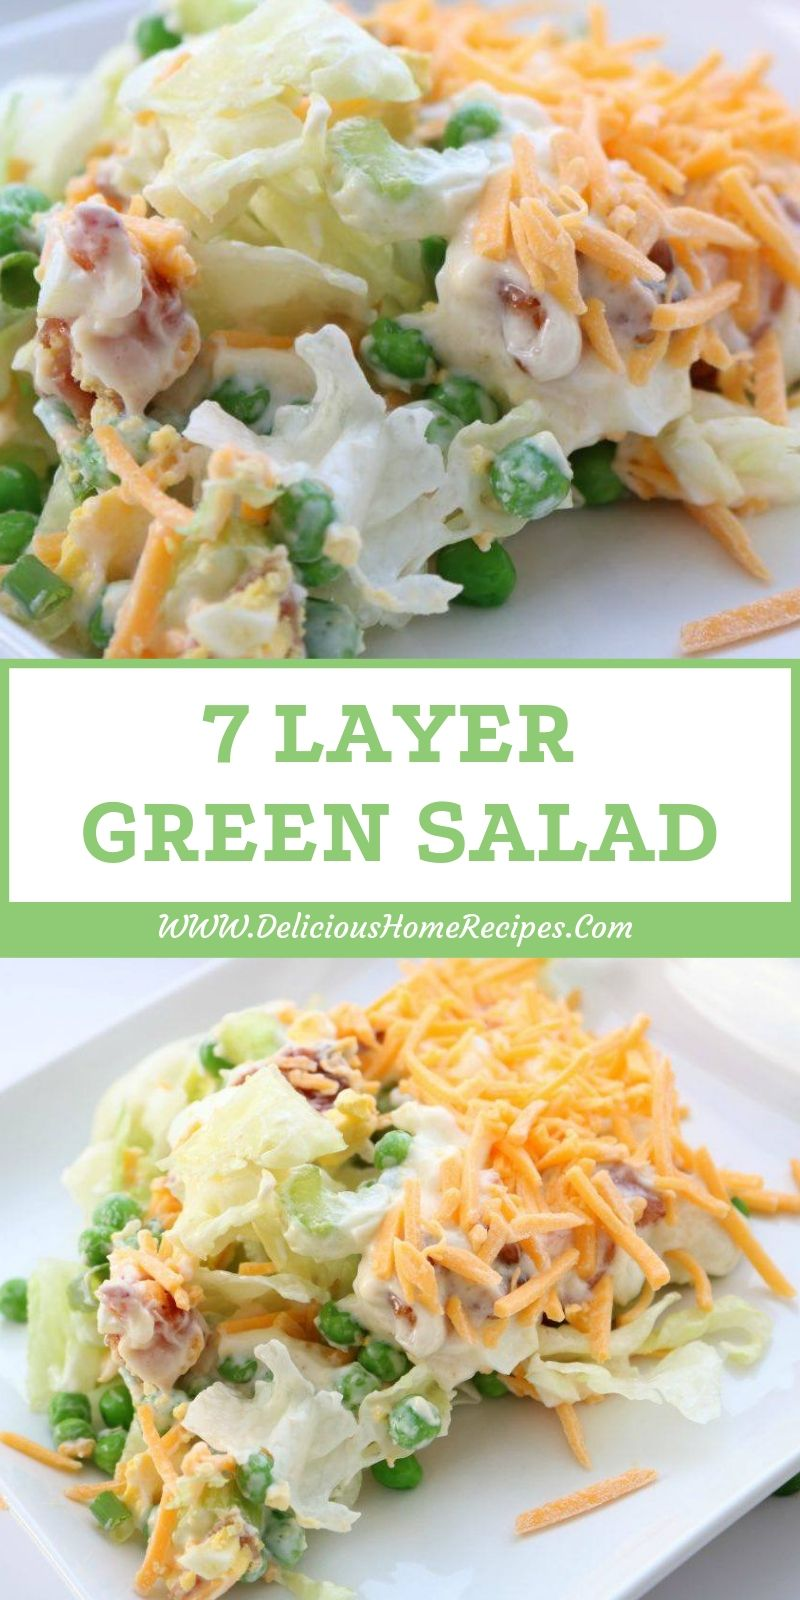 7 Layer Green Salad Layered Salad Recipes Seven Layer Salad Layered Salad